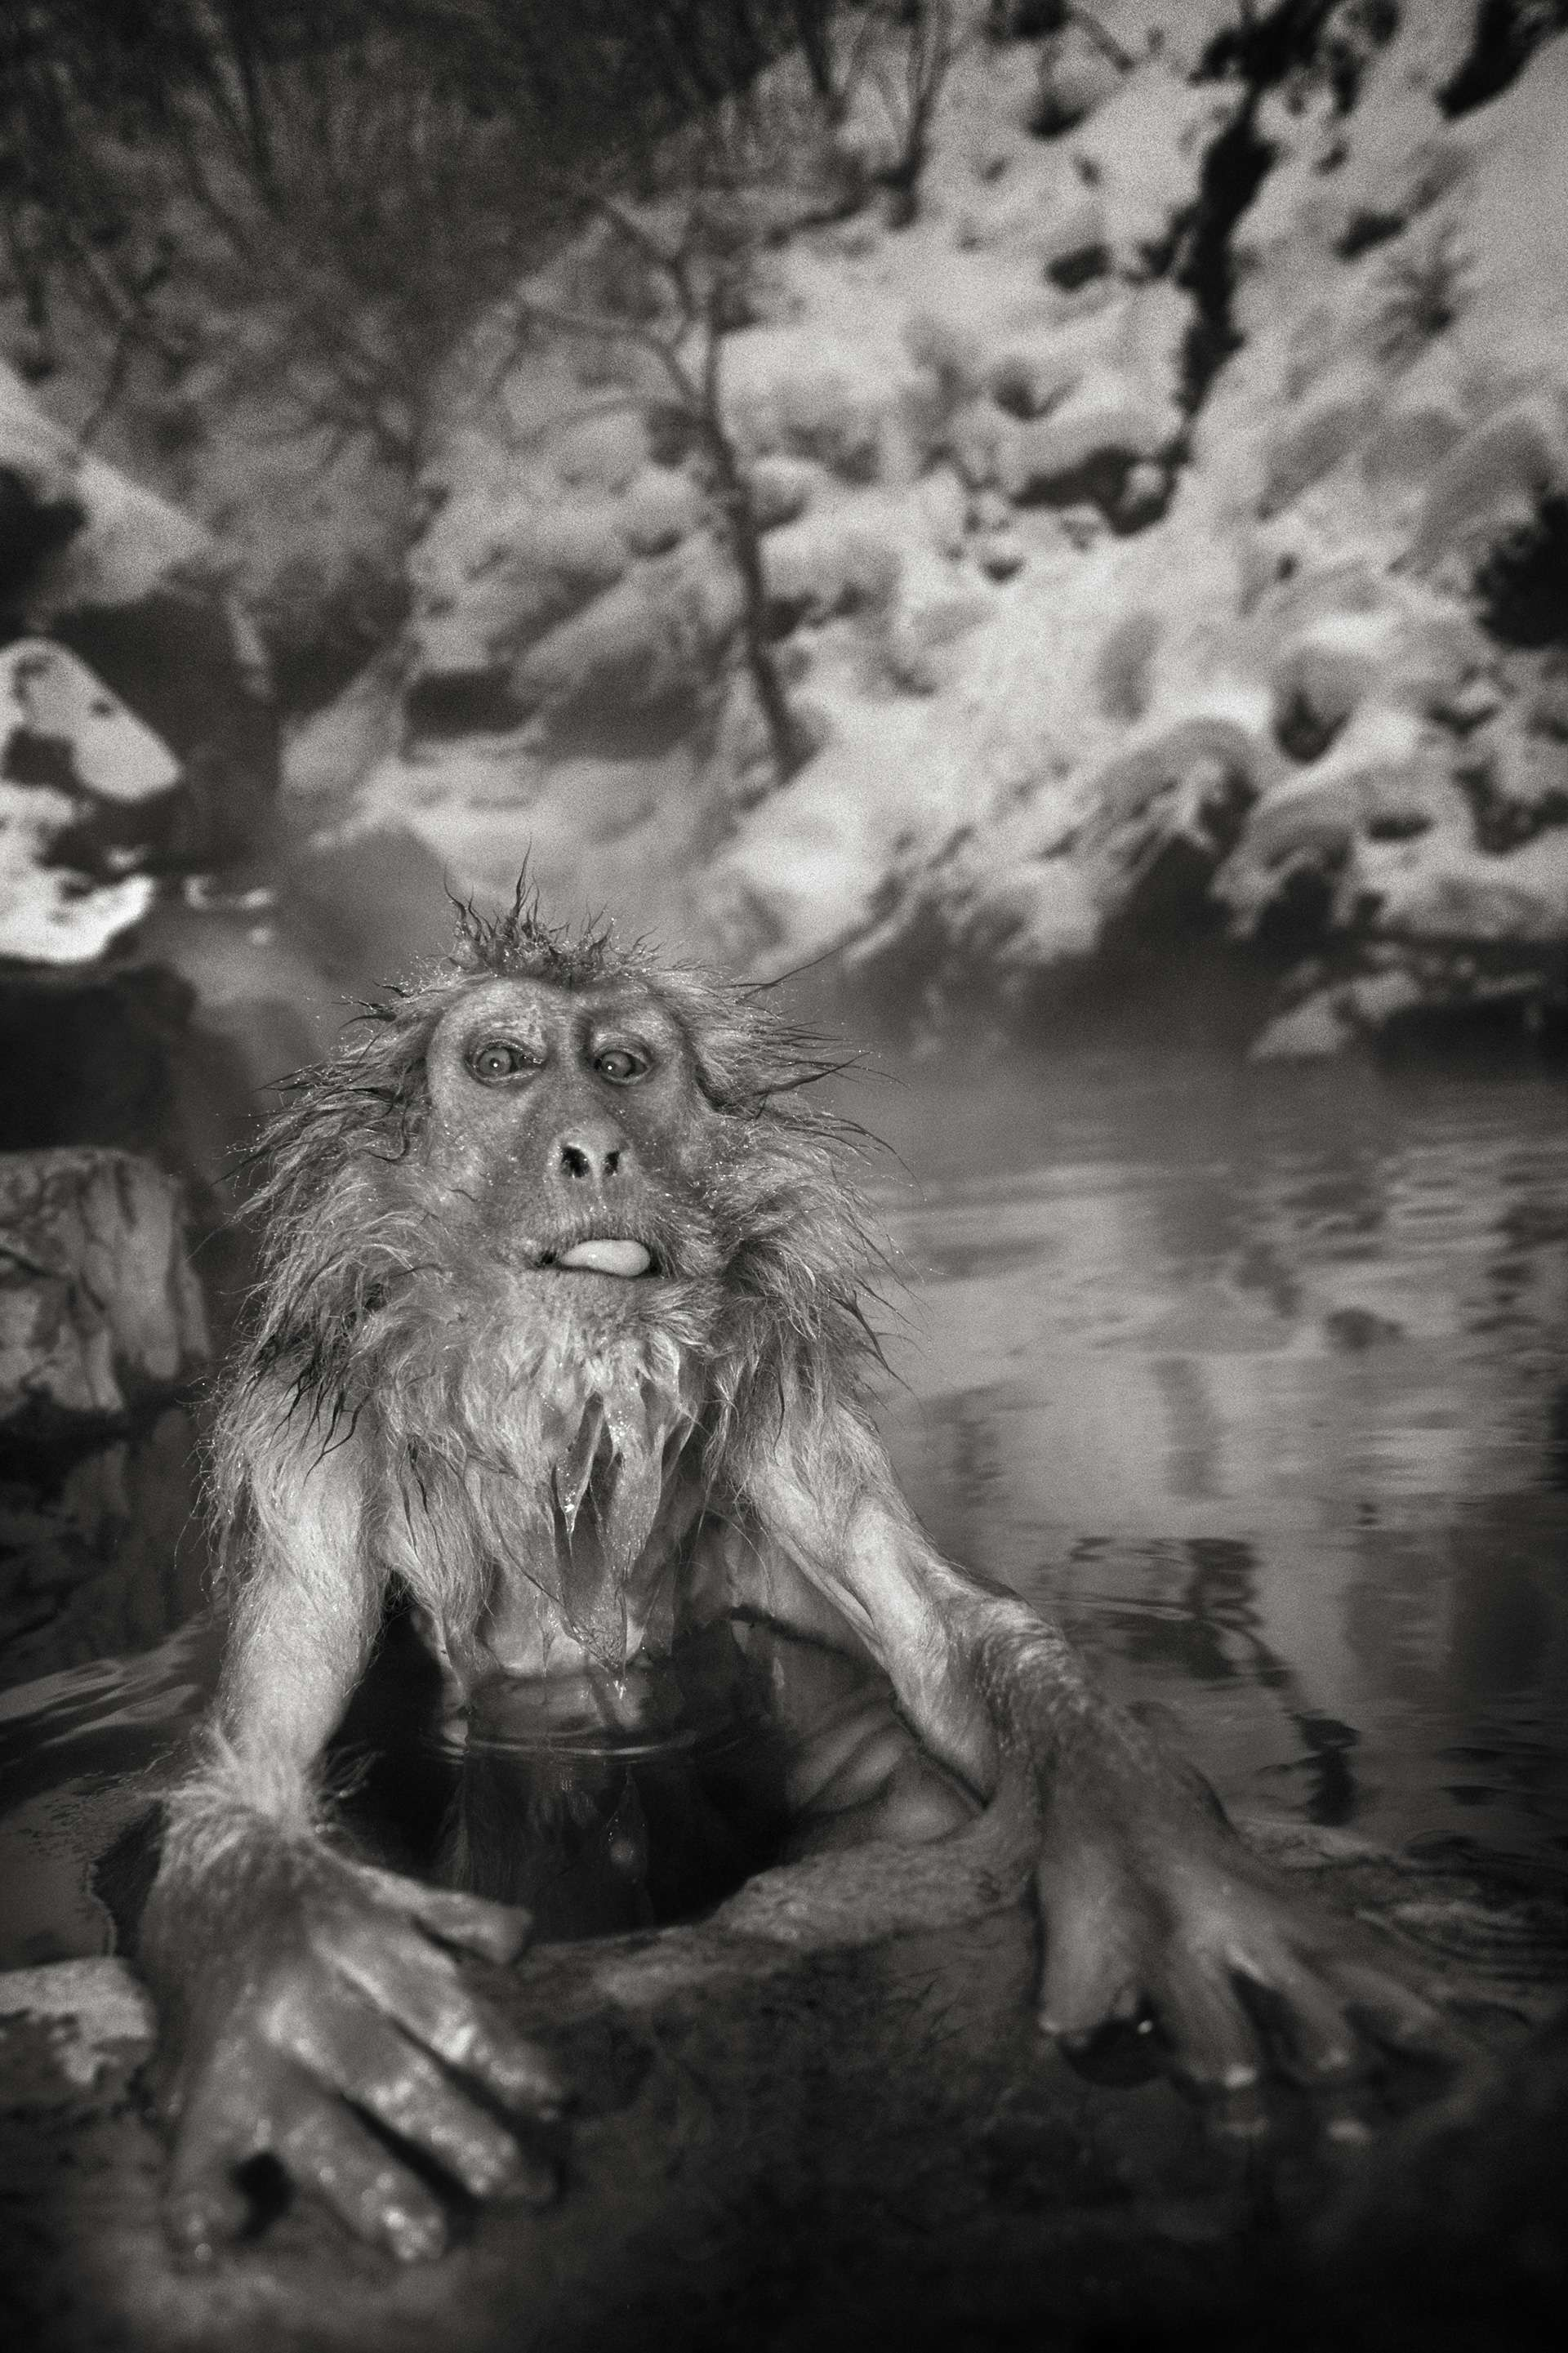 Photographie de Gilles Martin : macaque du Japon, struggle for life